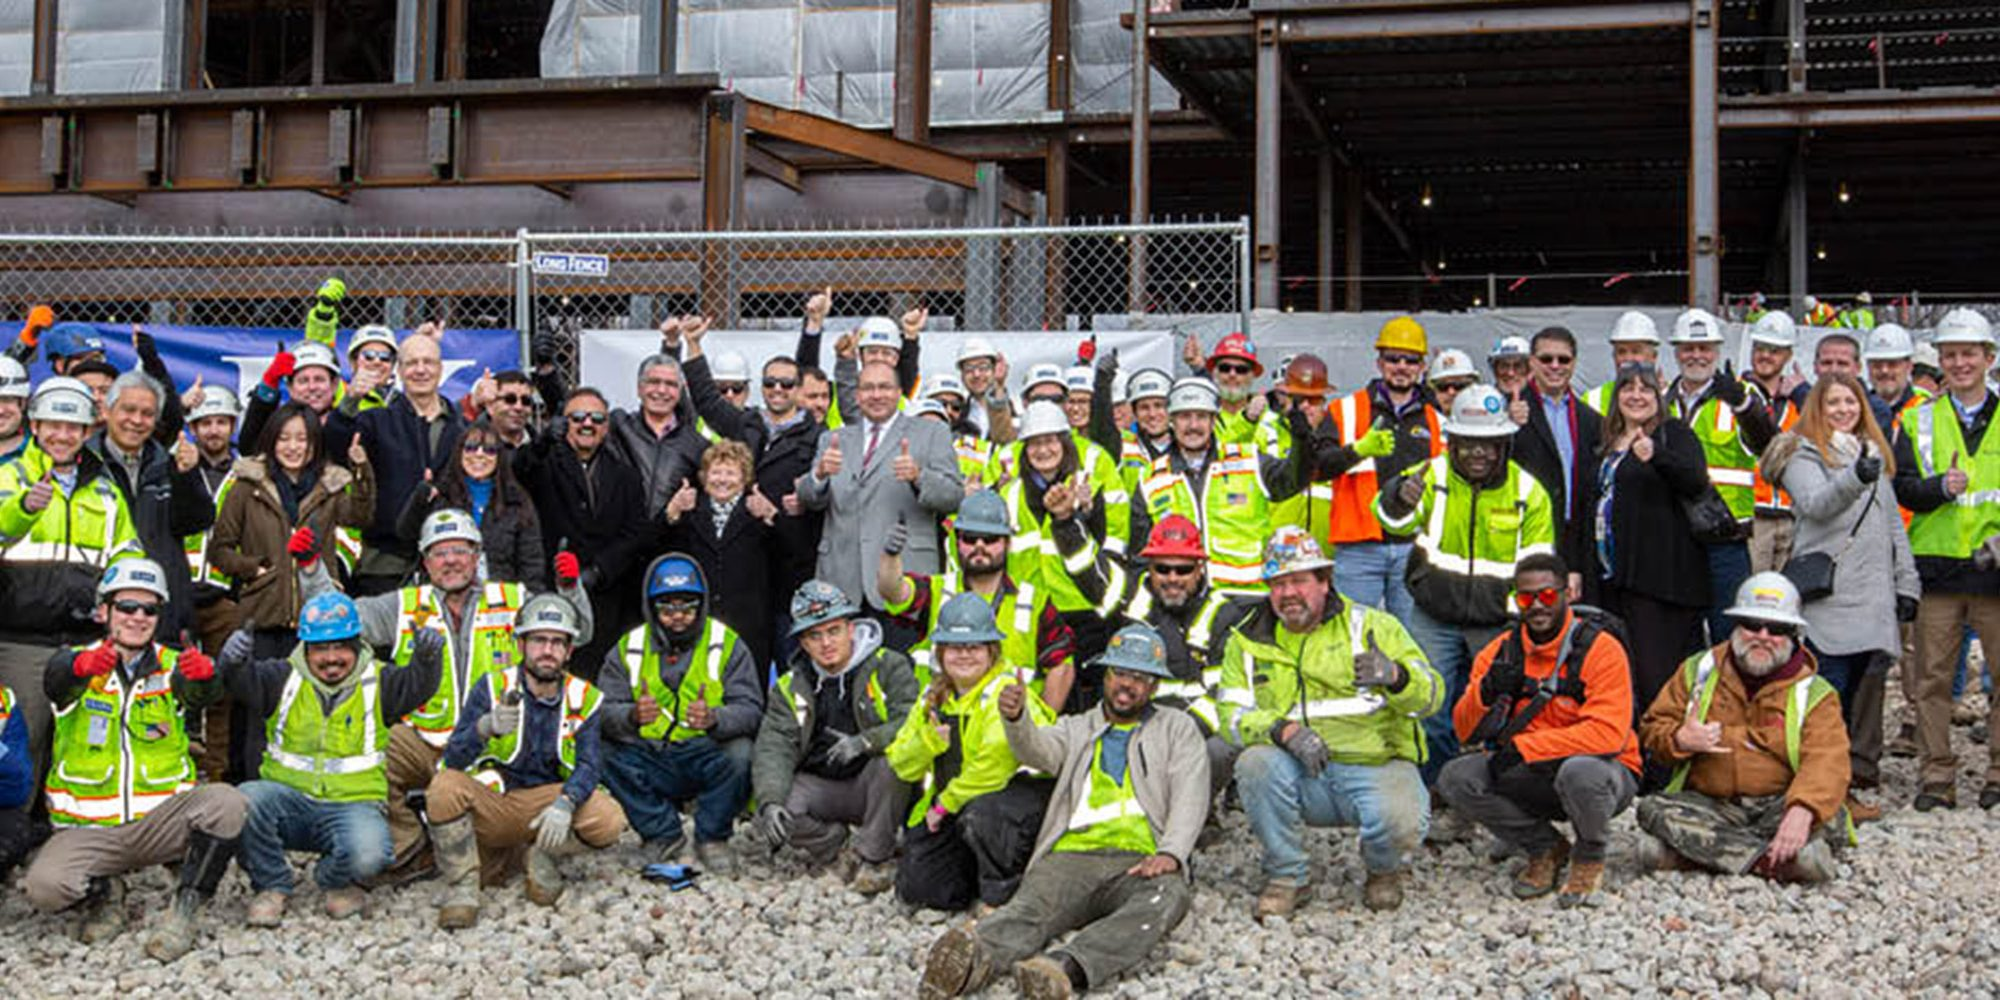 Clark Construction, Harkins, and trades gather to celebrate topping out of courthouse building